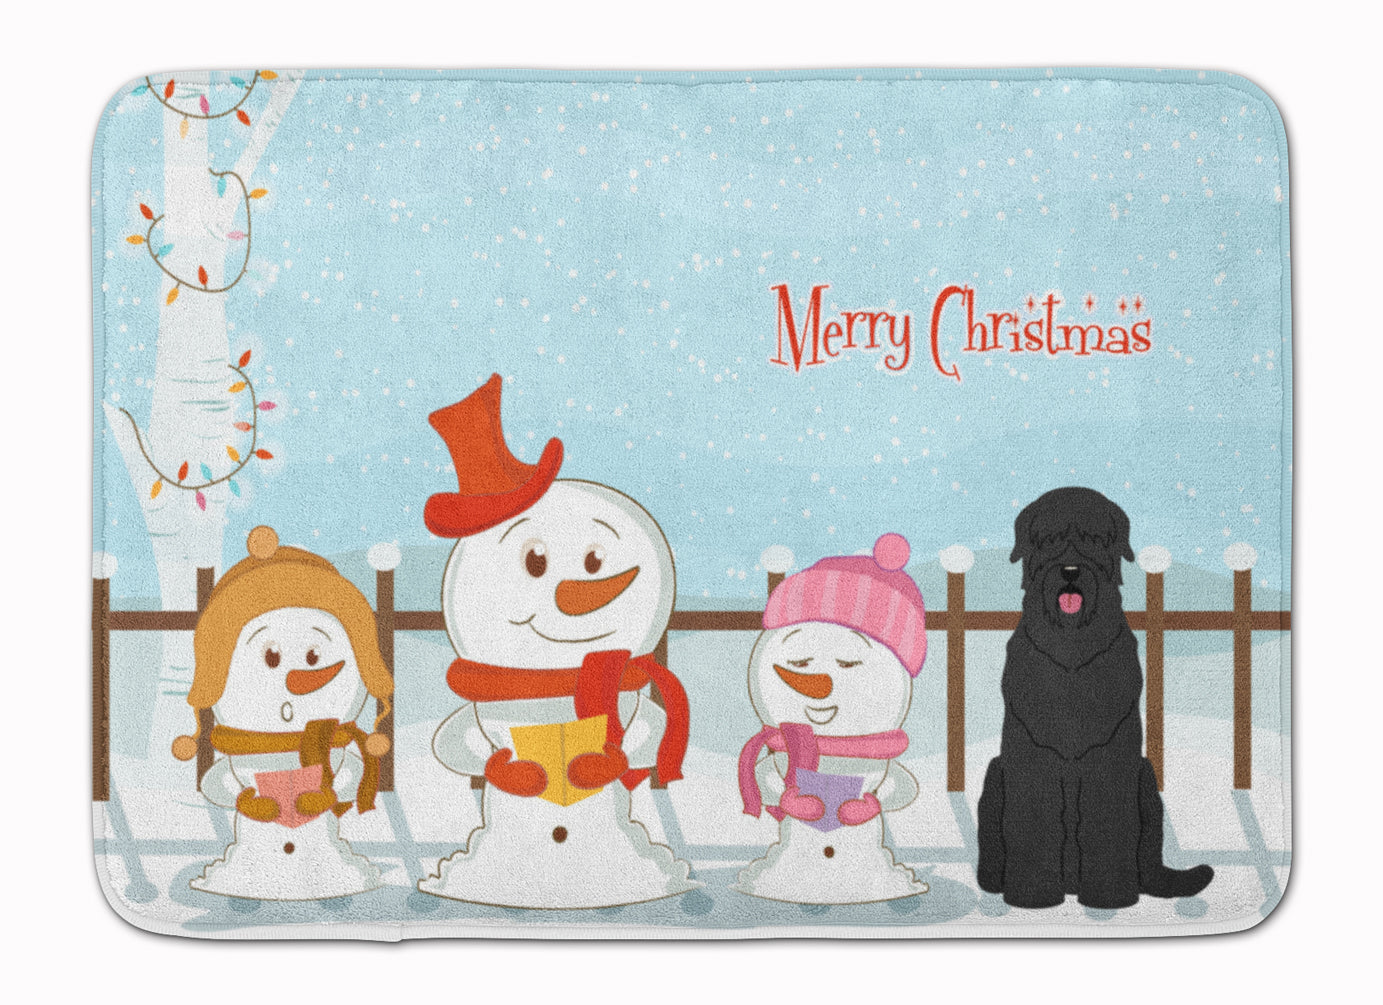 Merry Christmas Carolers Black Russian Terrier Machine Washable Memory Foam Mat BB2357RUG by Caroline's Treasures